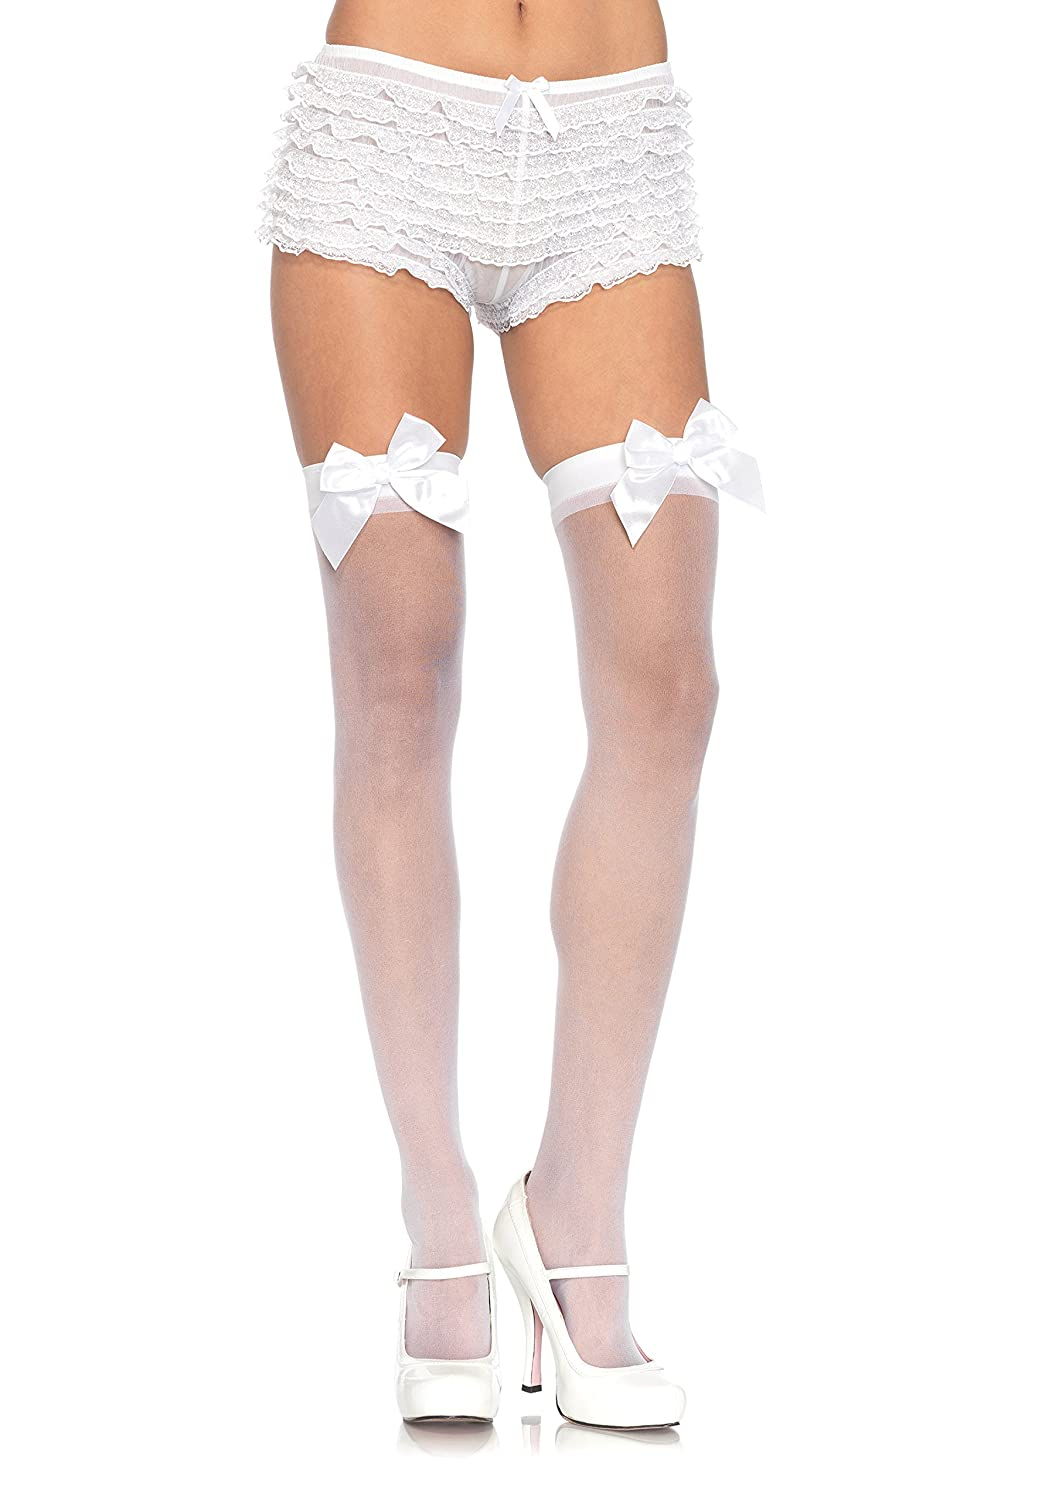 Leg Avenue Women's Sheer Thigh High Stockings With Satin Bow Black One Size 191122001